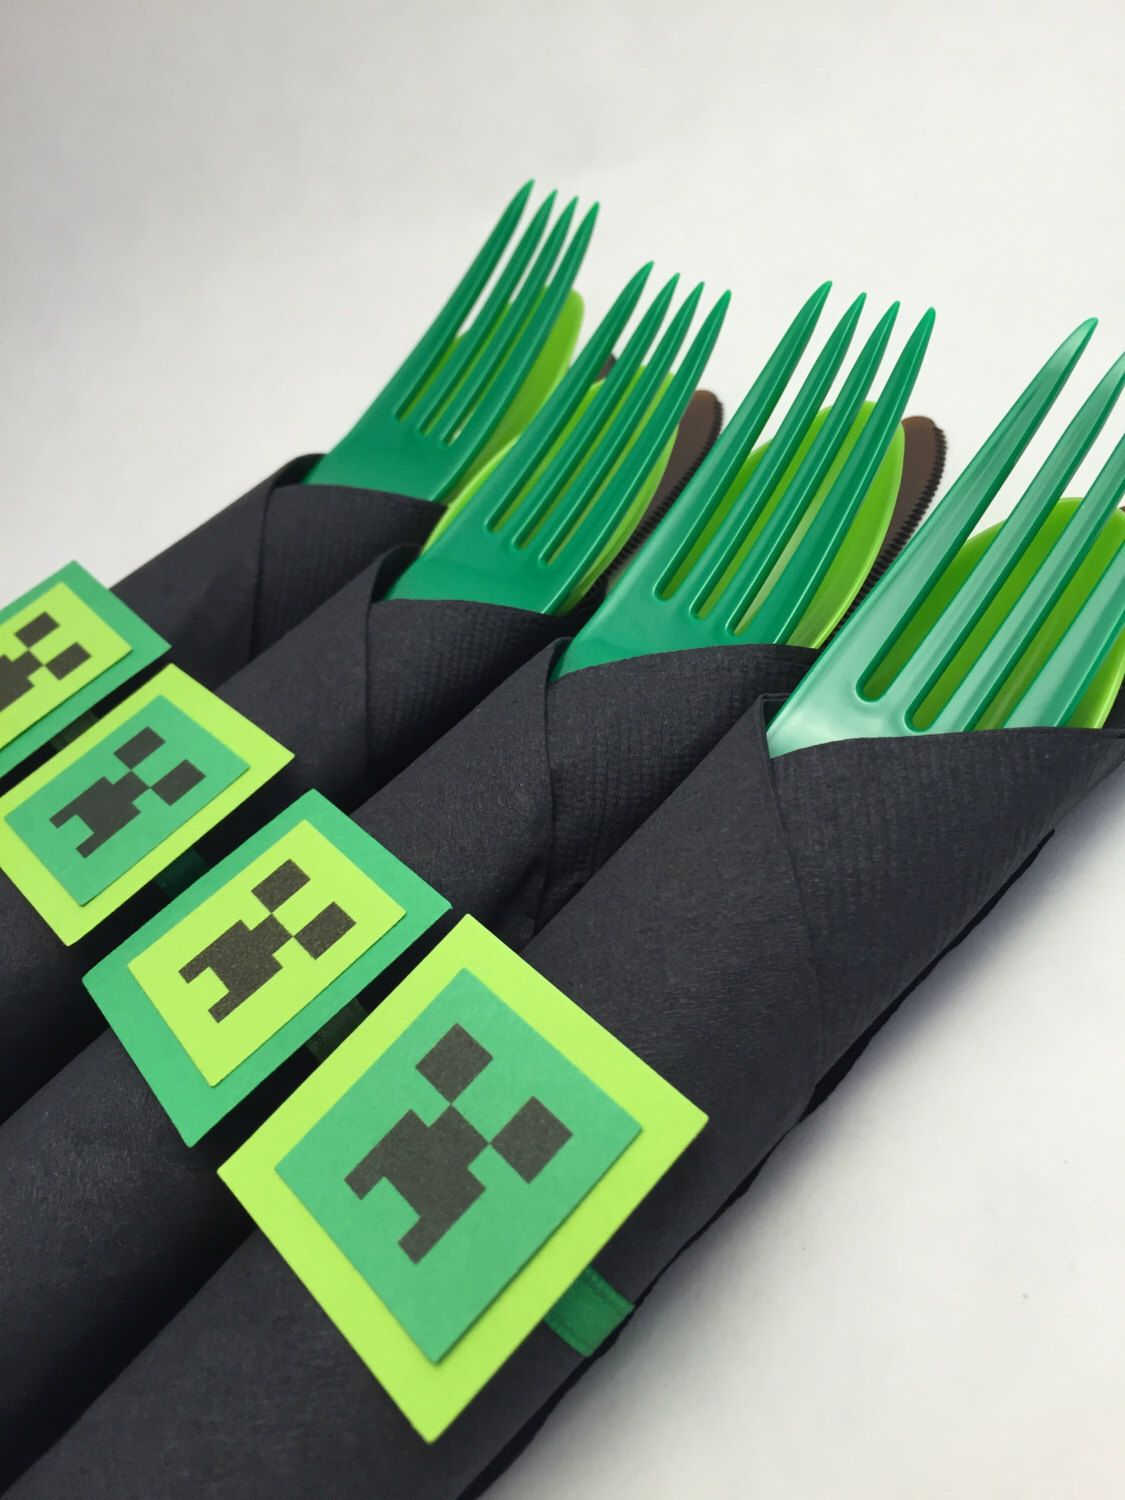 Minecraft Theme Party Cutlery Minecraft Disposable Party Silverware Mine craft Party Supplies by MadHatterPartyBox